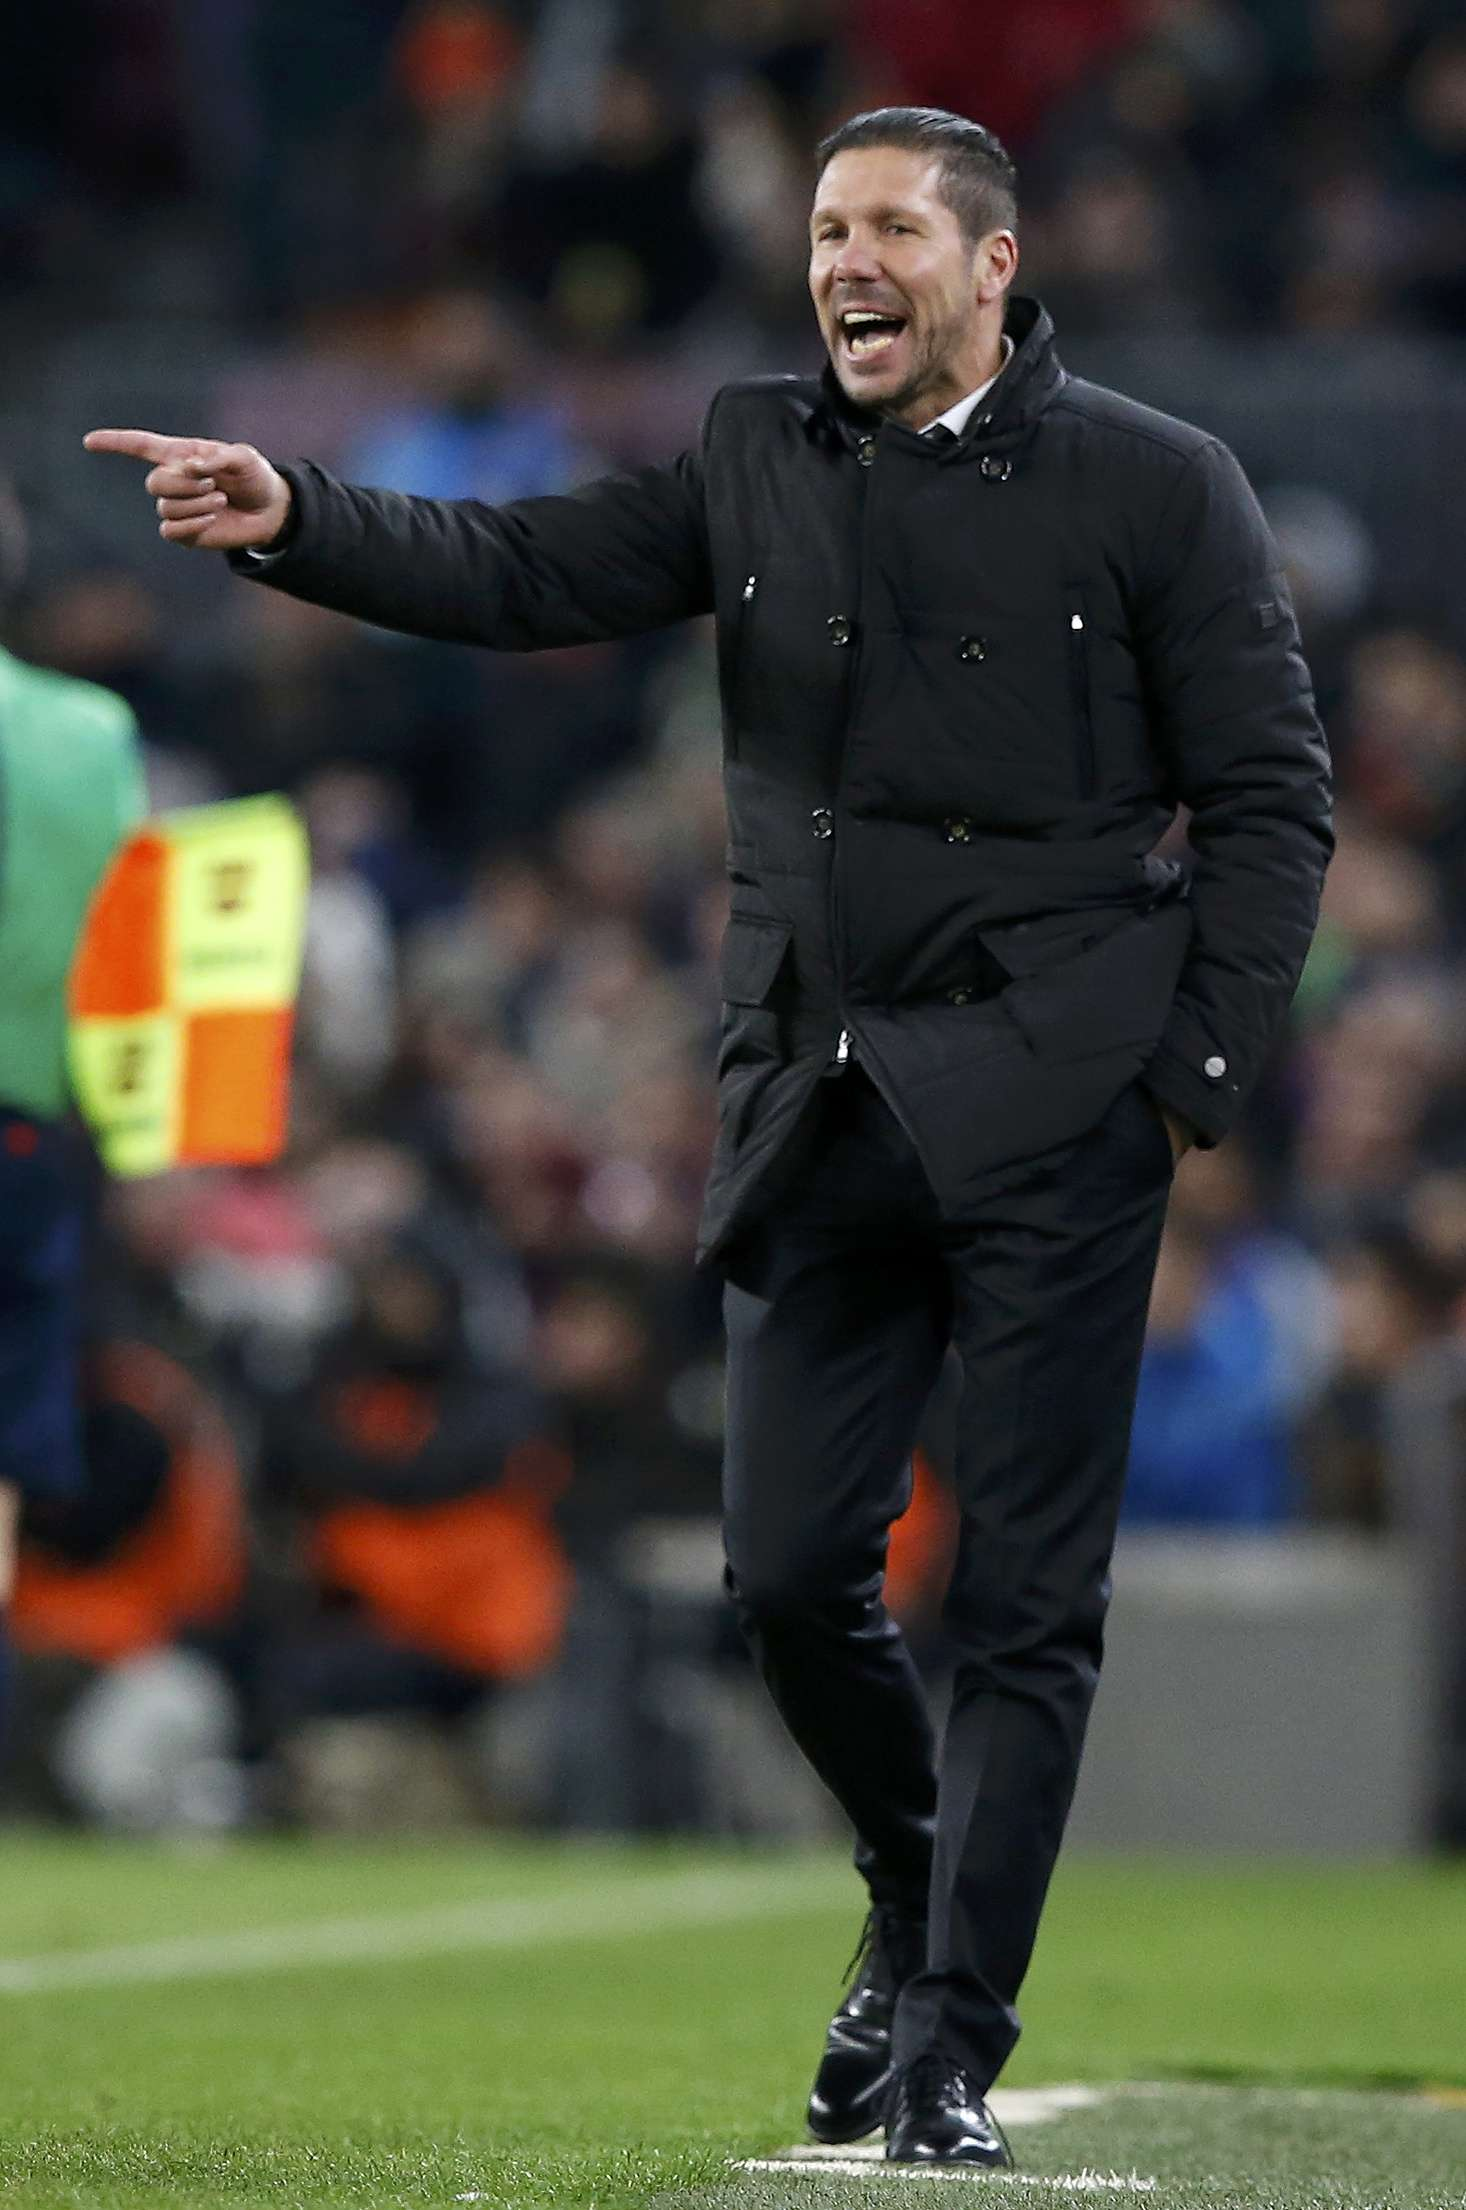 Atletico Madrid's coach Diego Simeone reacts during their King's Cup quarter-final first leg soccer match against Barcelona at the Nou Camp stadium in Barcelona, January 21, 2015. REUTERS/Gustau Nacarino (SPAIN - Tags: SPORT SOCCER) Foto: GUSTAU NACARINO/REUTERS